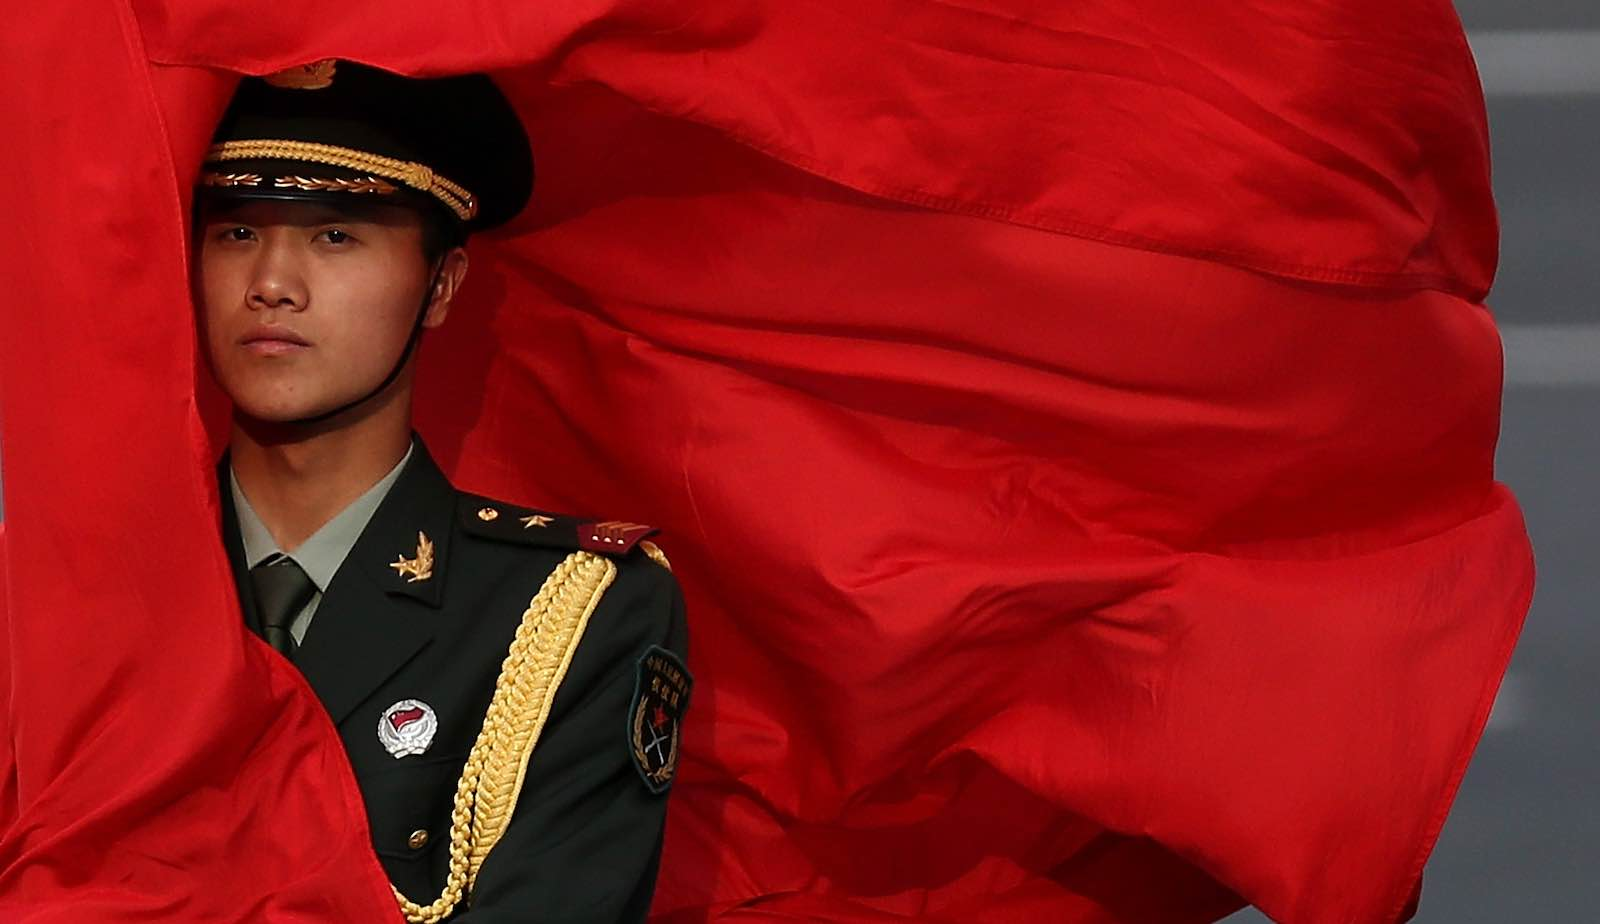 An honour guard outside the Great Hall of the People, Beijing, in 2013 during a visit by then prime minister Julia Gillard (Photo by Feng Li/Getty)